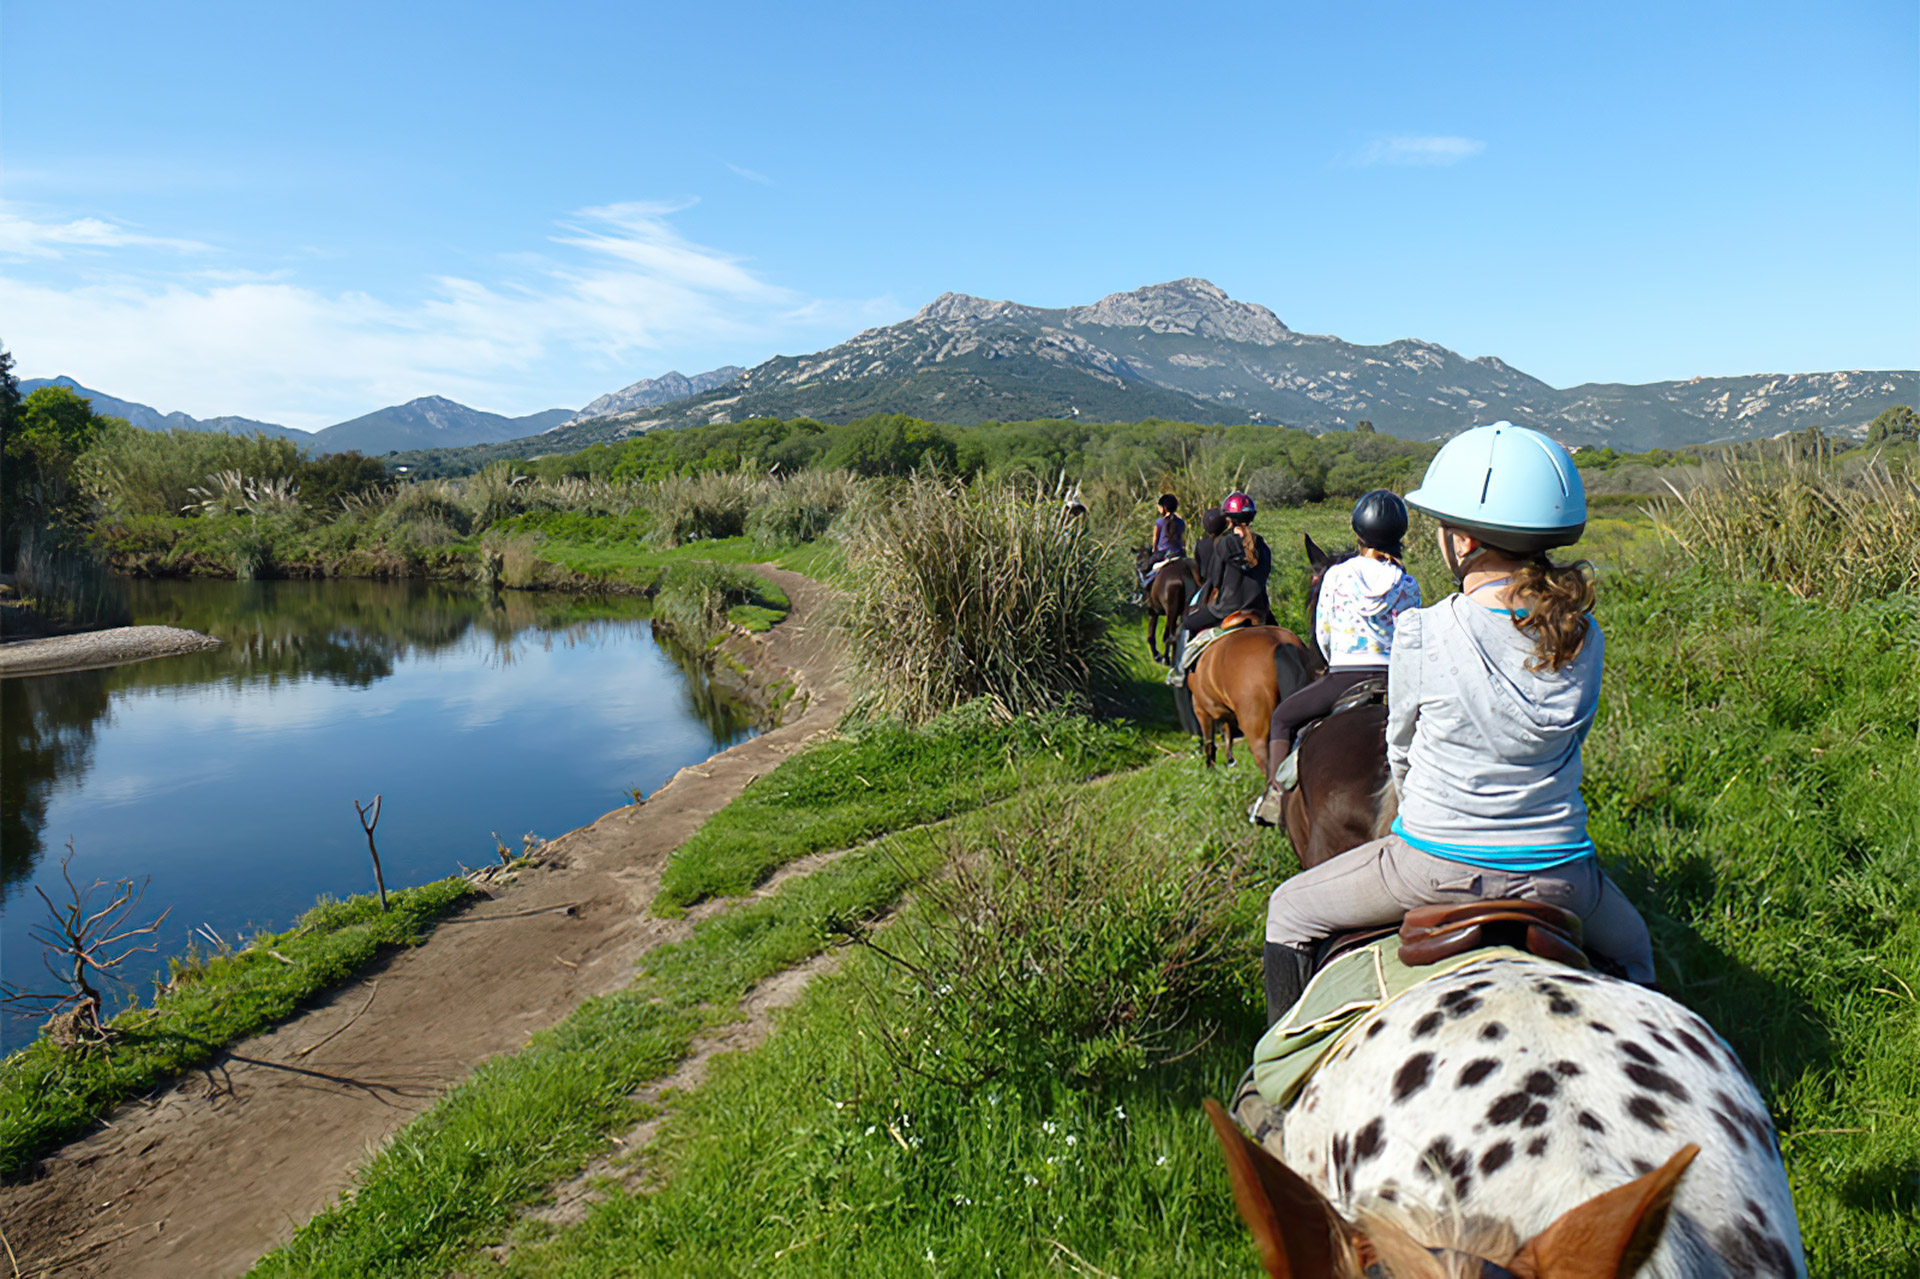 Horse riding excursion package